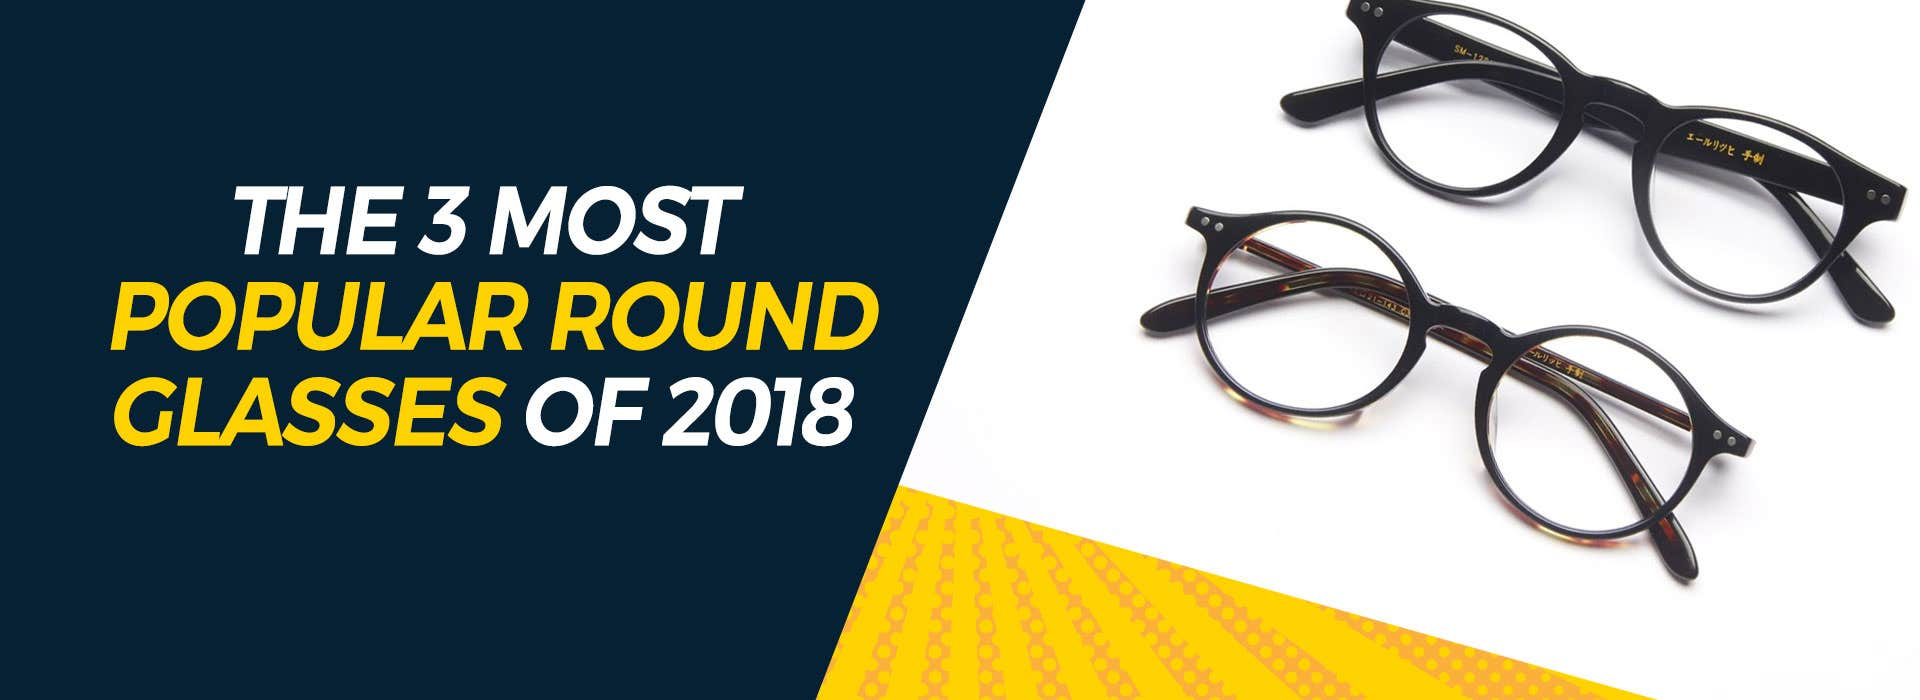 The 3 Most Popular Round Glasses of 2018